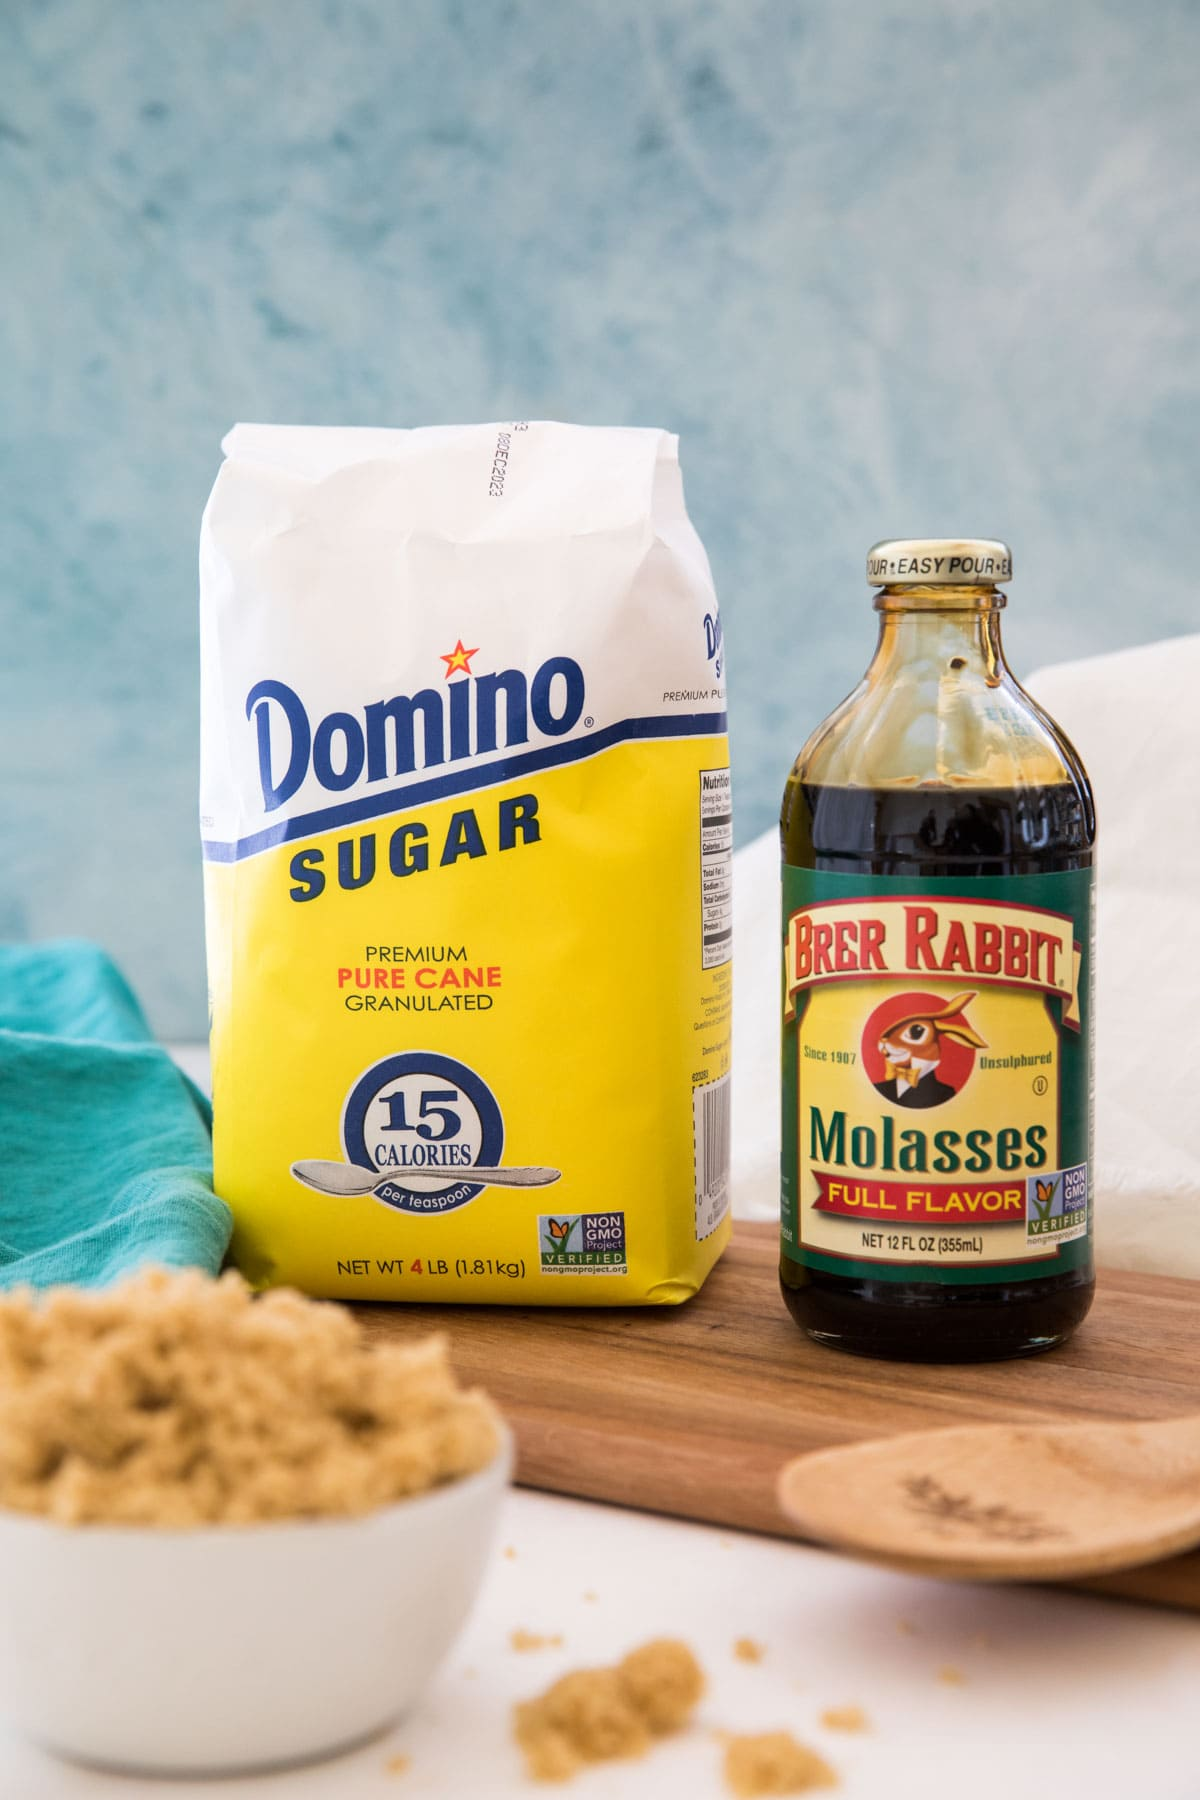 A bag of white sugar and a bottle of molasses